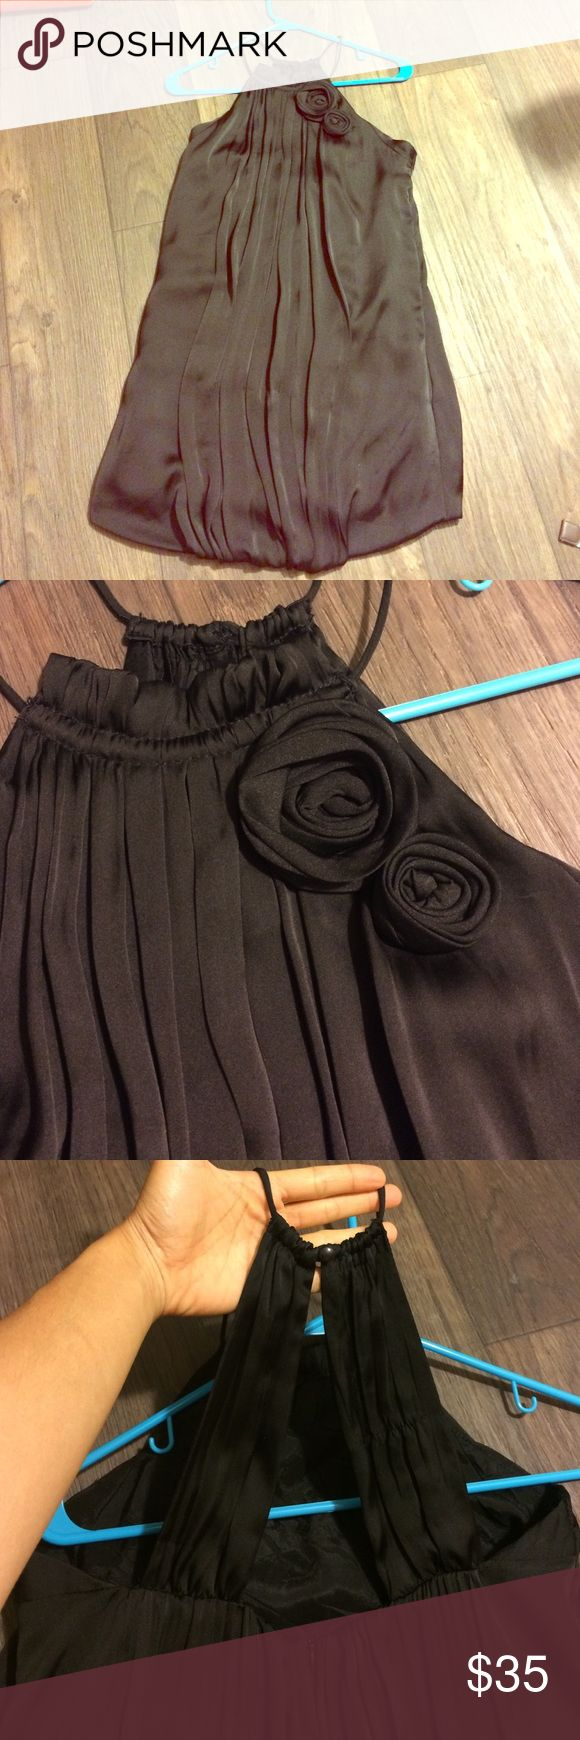 Zara tulip dress Super cute halter dress. Black satin material with small flower detail on the front and straps on the back. Fits S/M. Zara Dresses